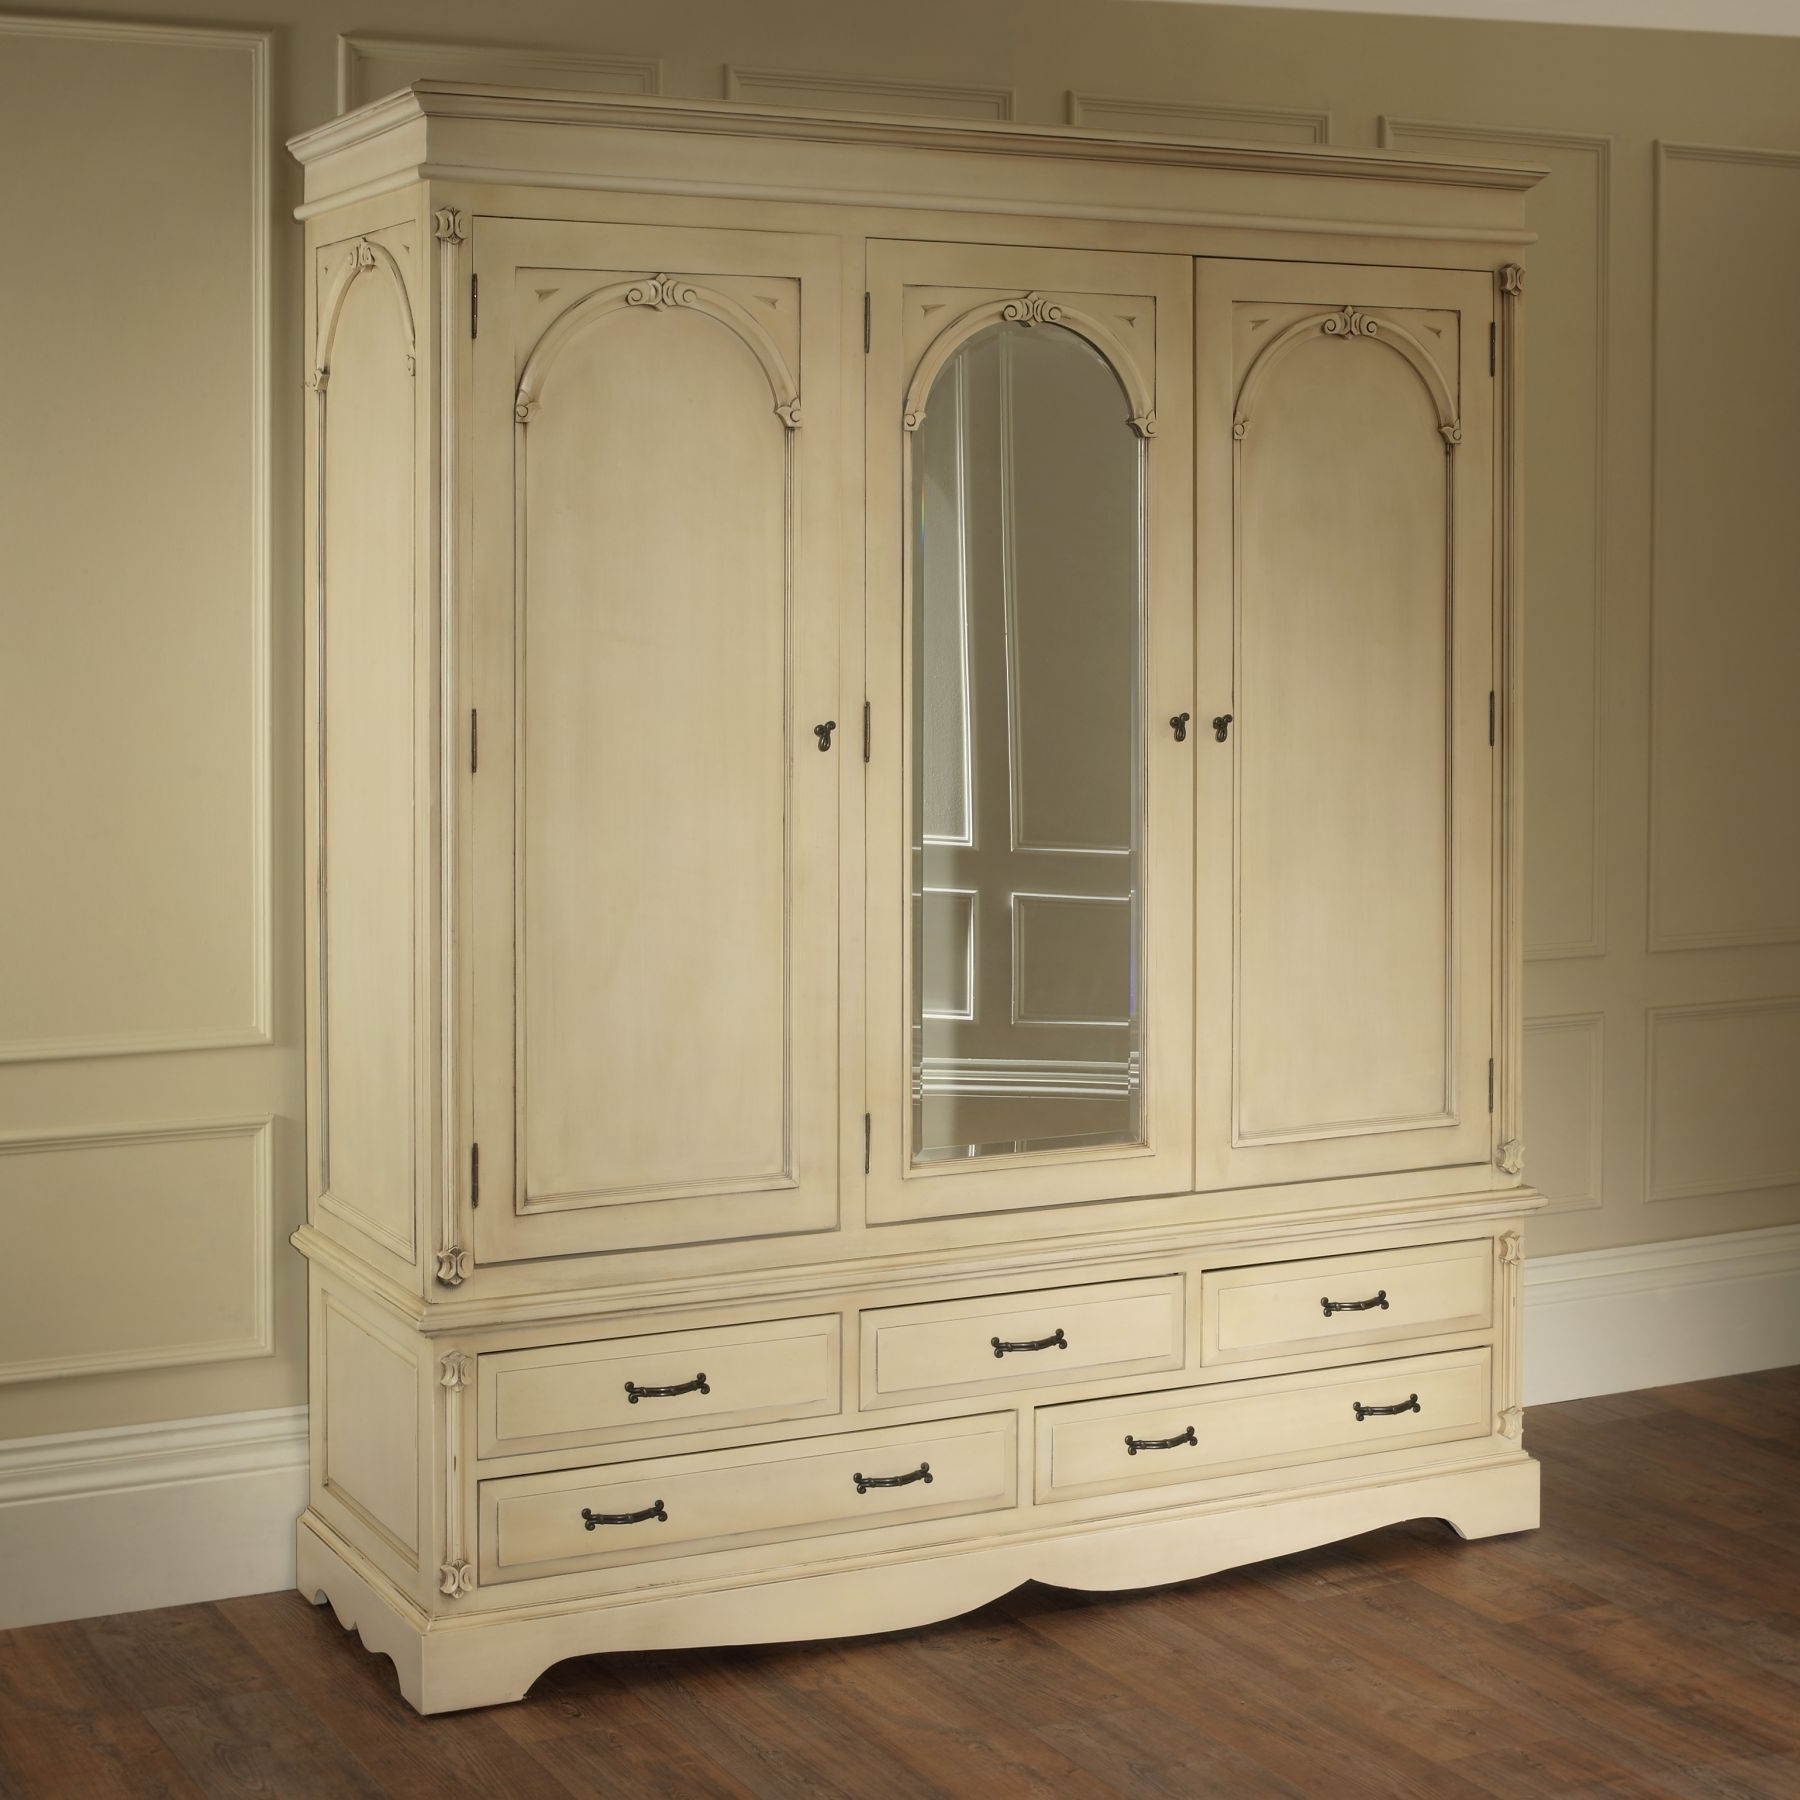 2018 Antique White Wardrobes For French Style Mirrors Cheap Wardrobes Cream Wardrobe Armoires Doors (View 11 of 15)